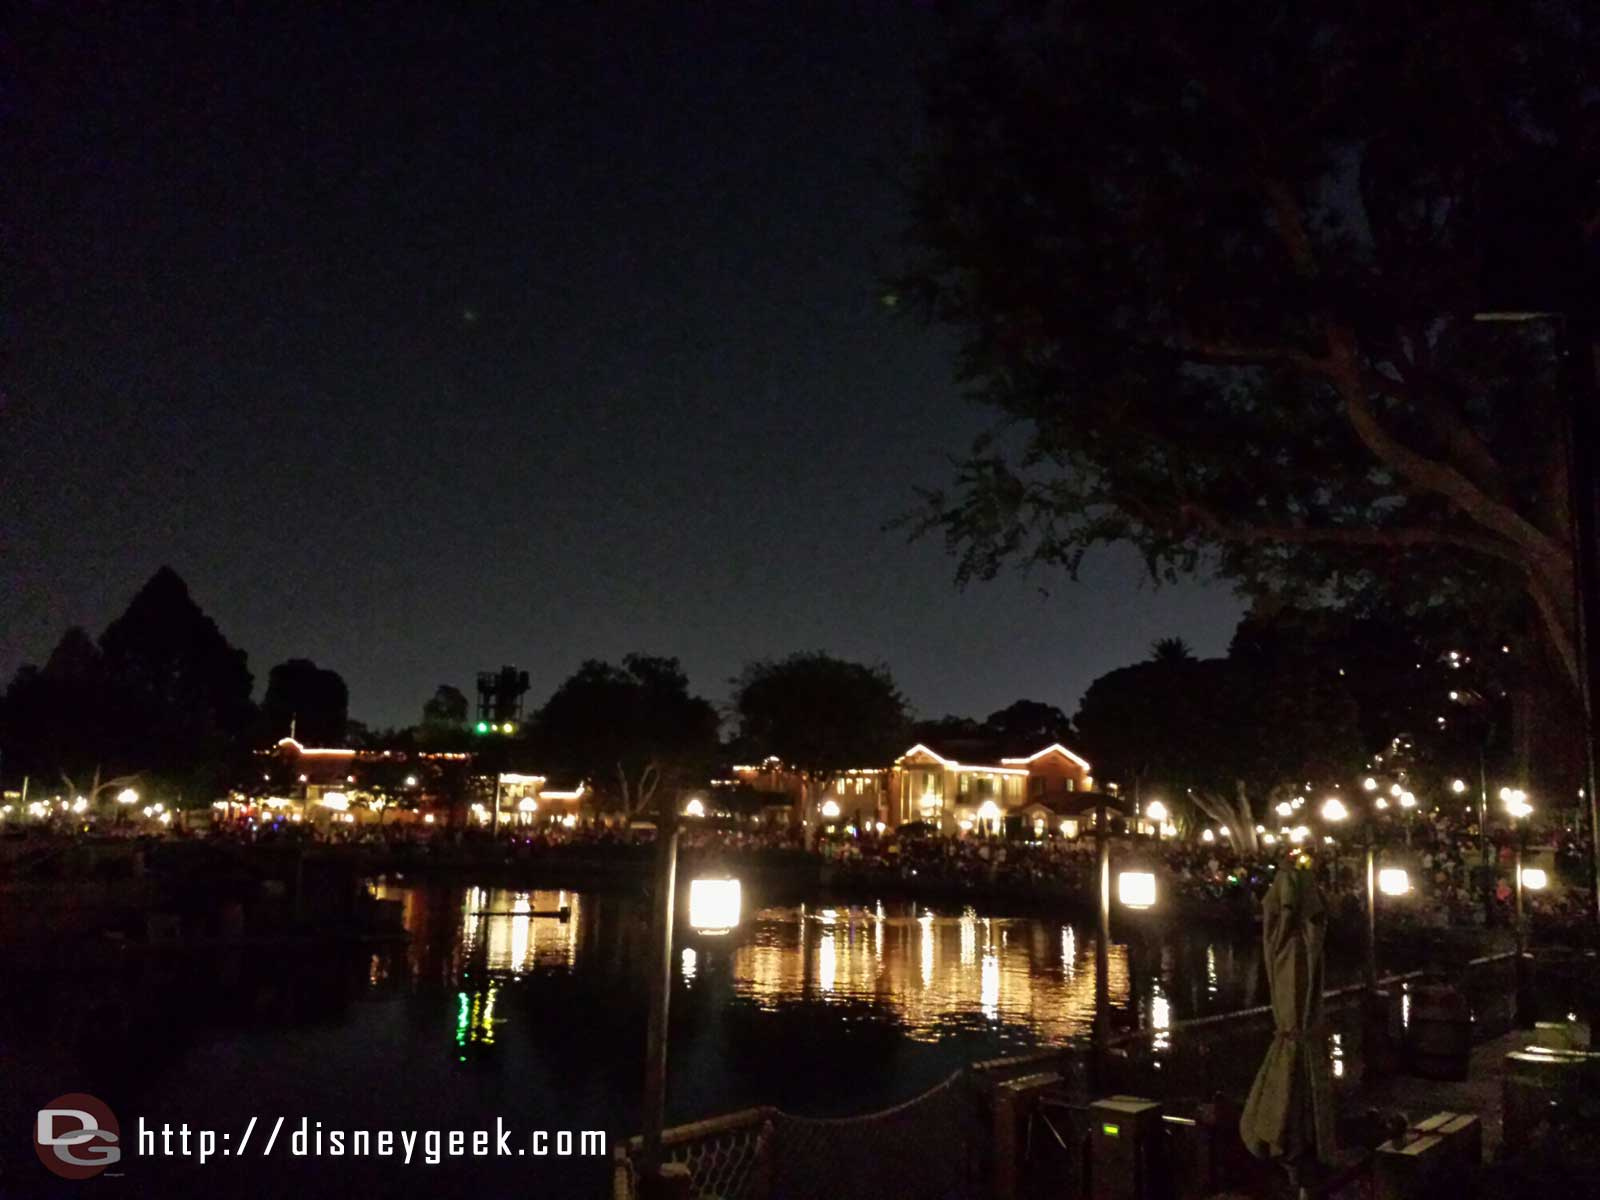 Made it to the Rivers of America for Fantasmic with 2 minutes to spare #Disneyland